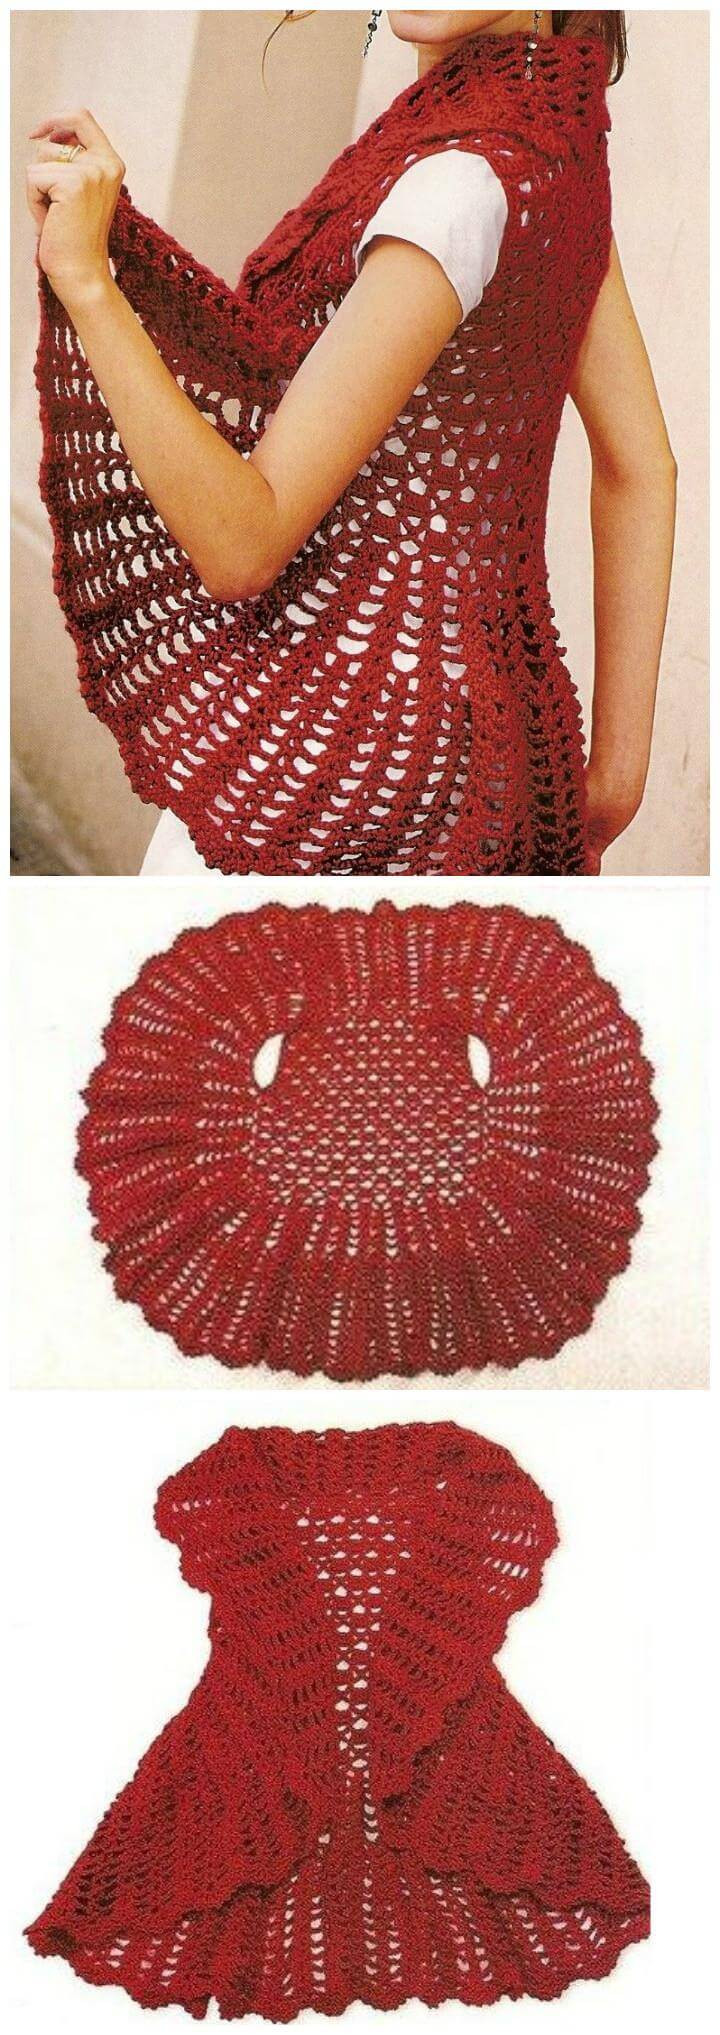 Best Of 12 Free Crochet Patterns for Circular Vest Jacket Circle Vest Crochet Pattern Free Of Gorgeous 31 Images Circle Vest Crochet Pattern Free